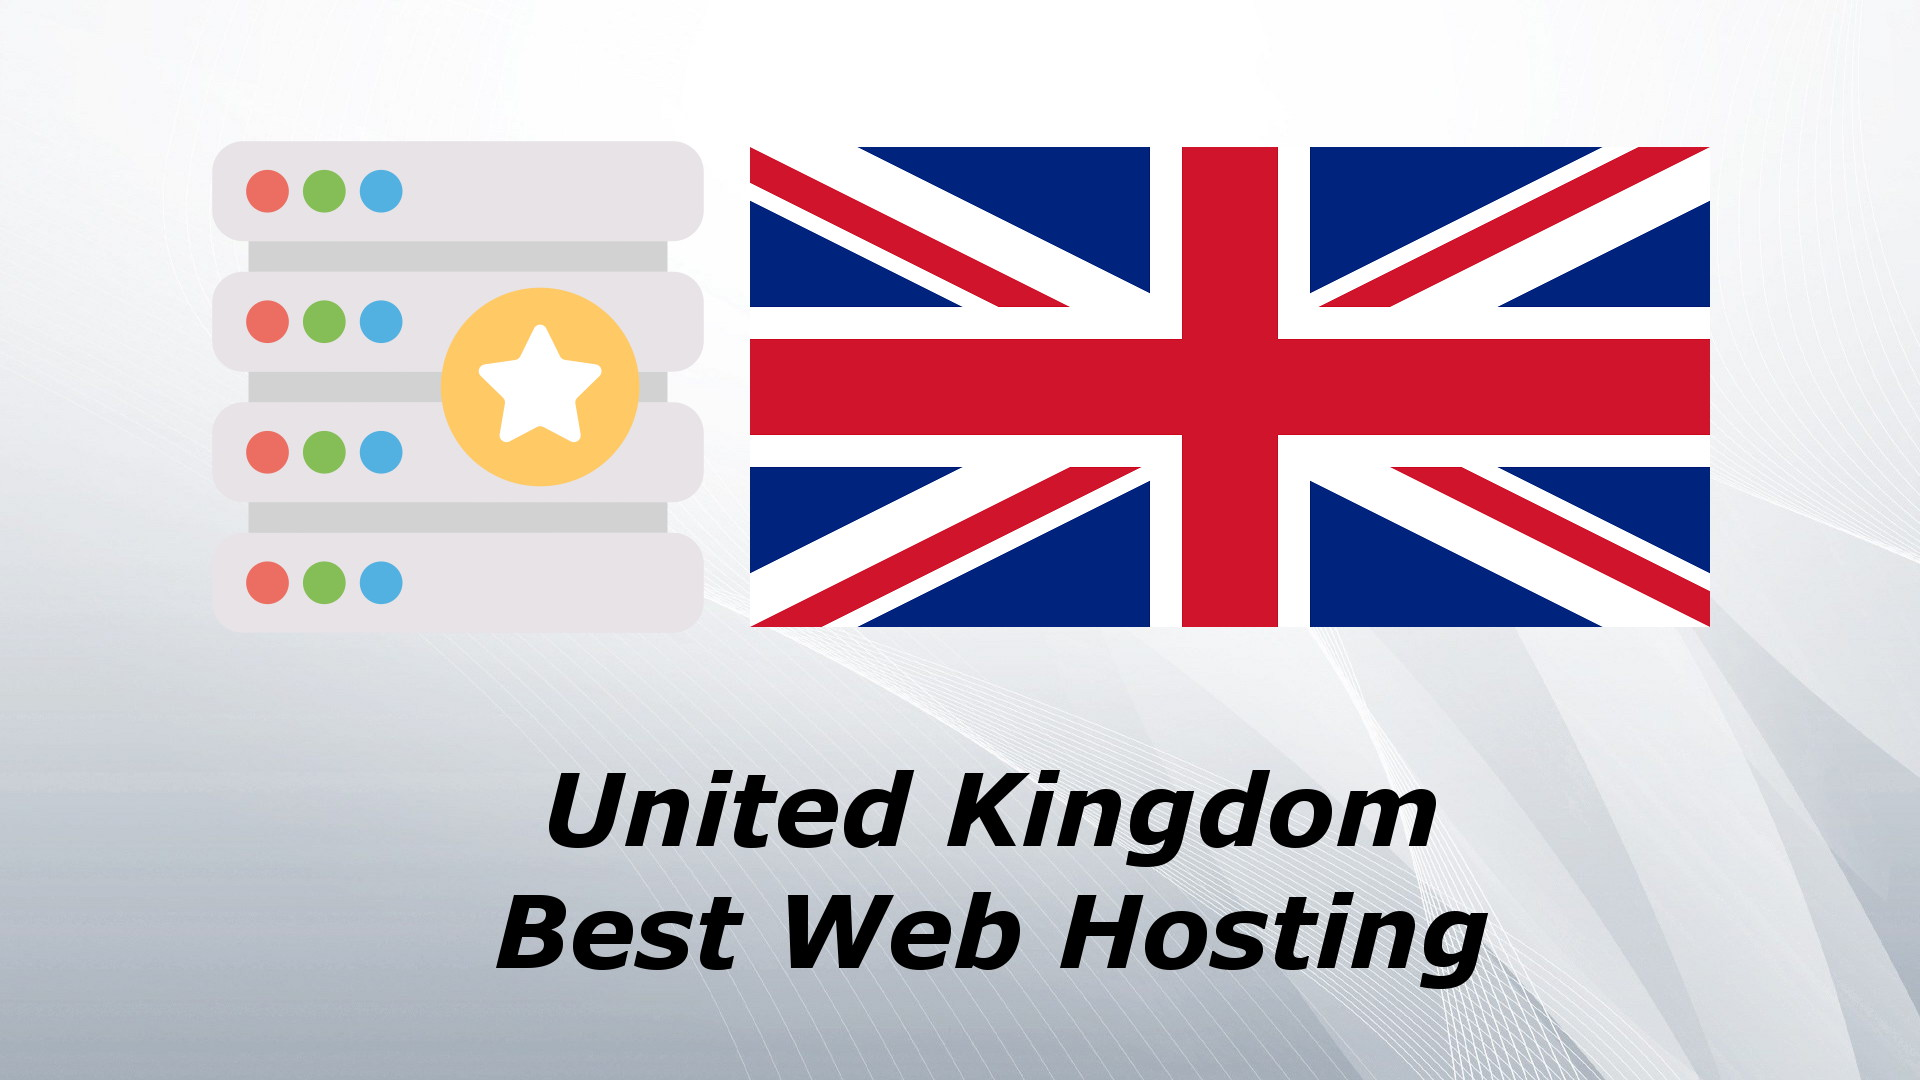 United Kingdom Best Web Hosting